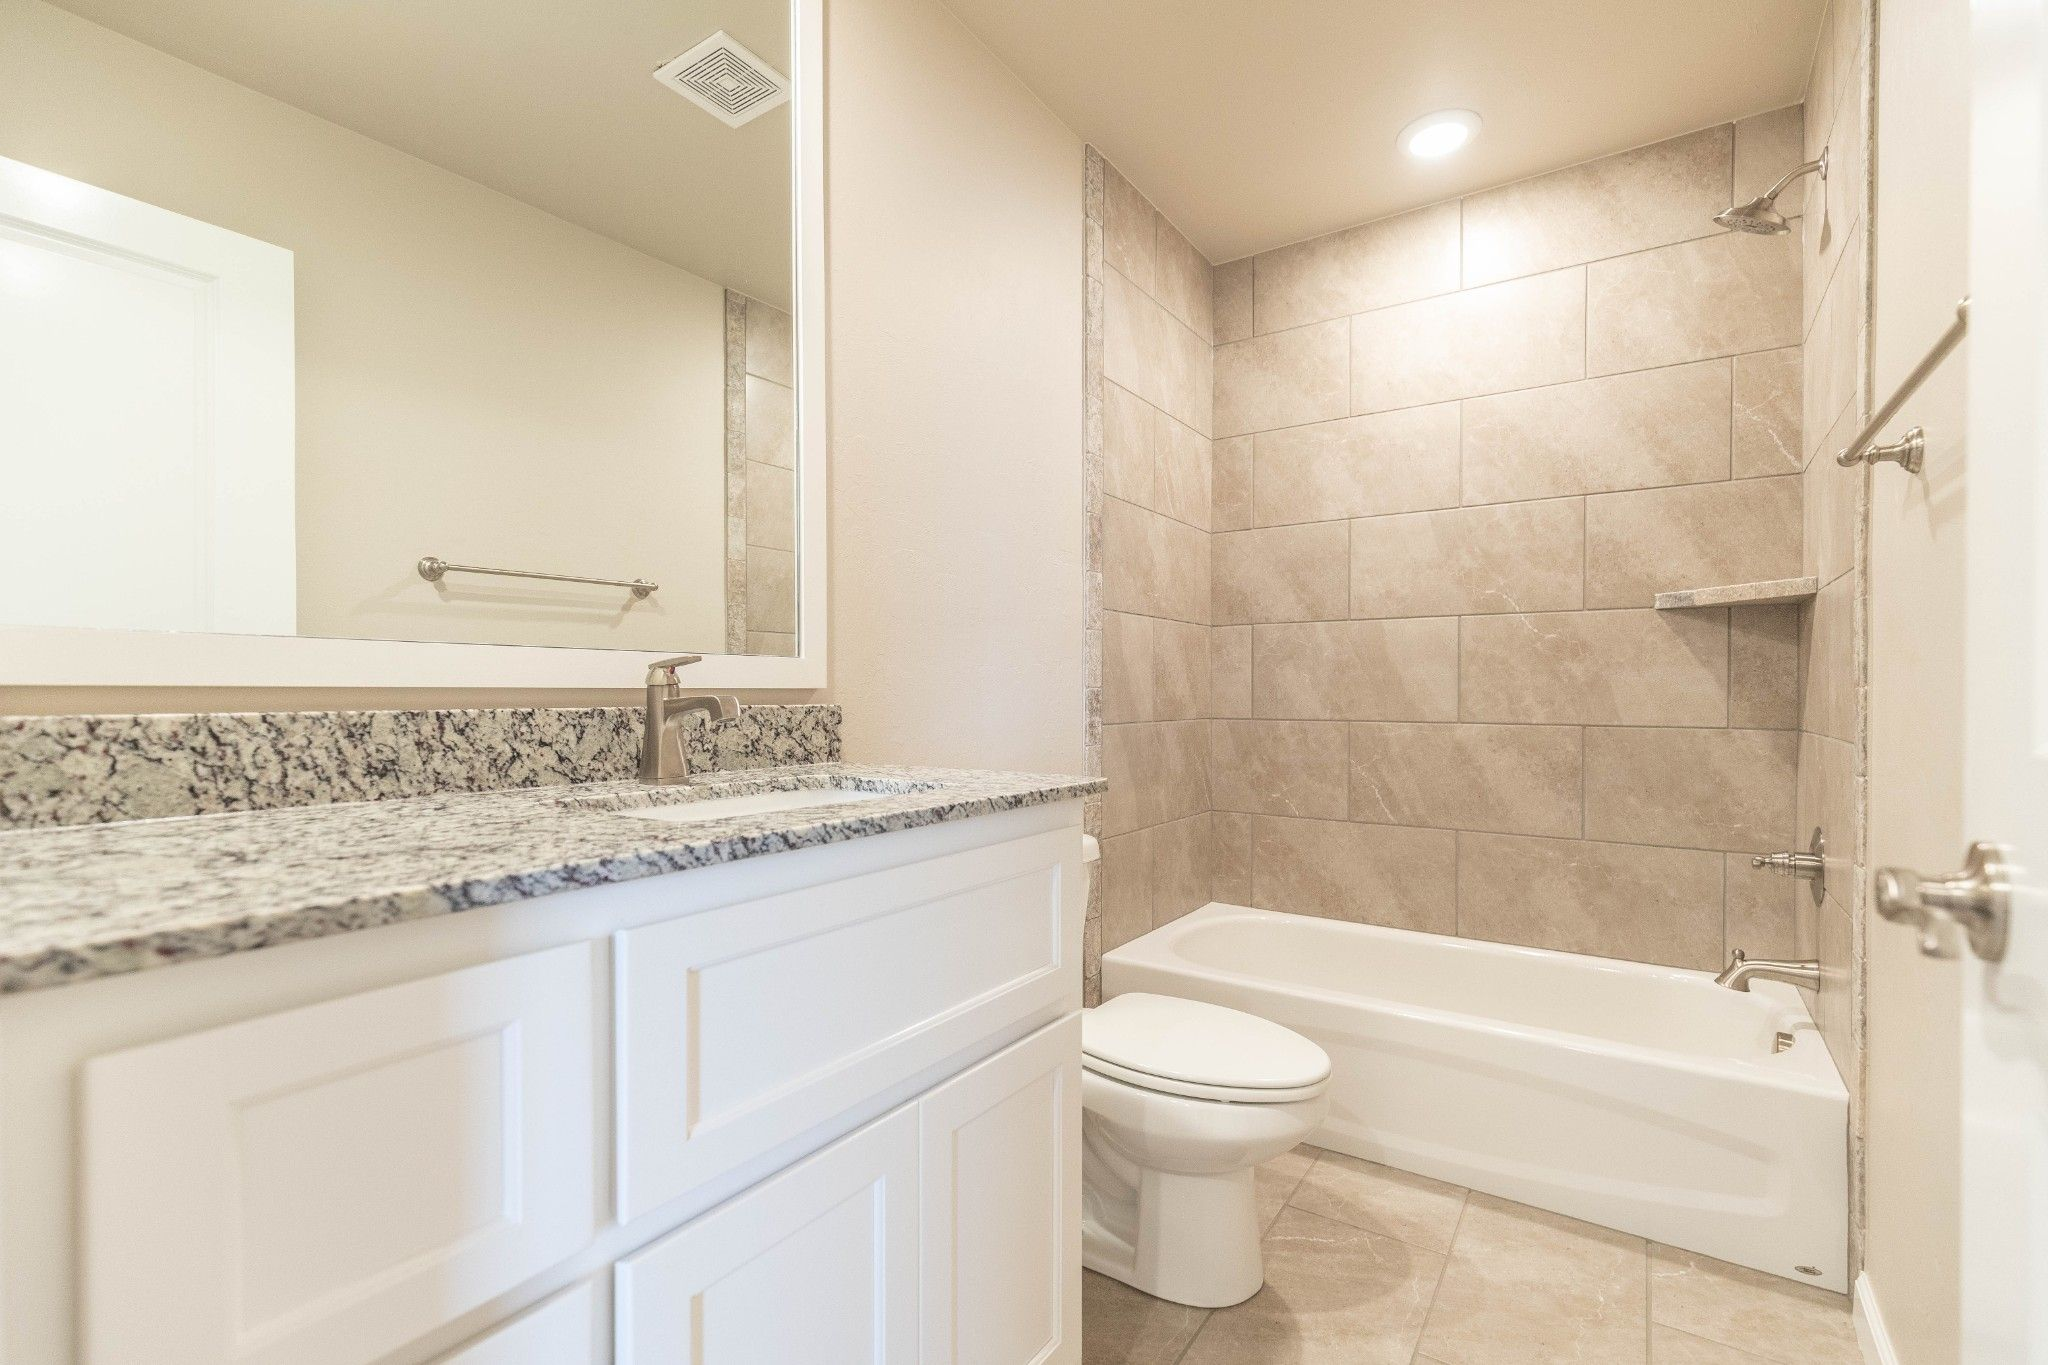 Bathroom featured in the Drake By Homes By Taber in Oklahoma City, OK